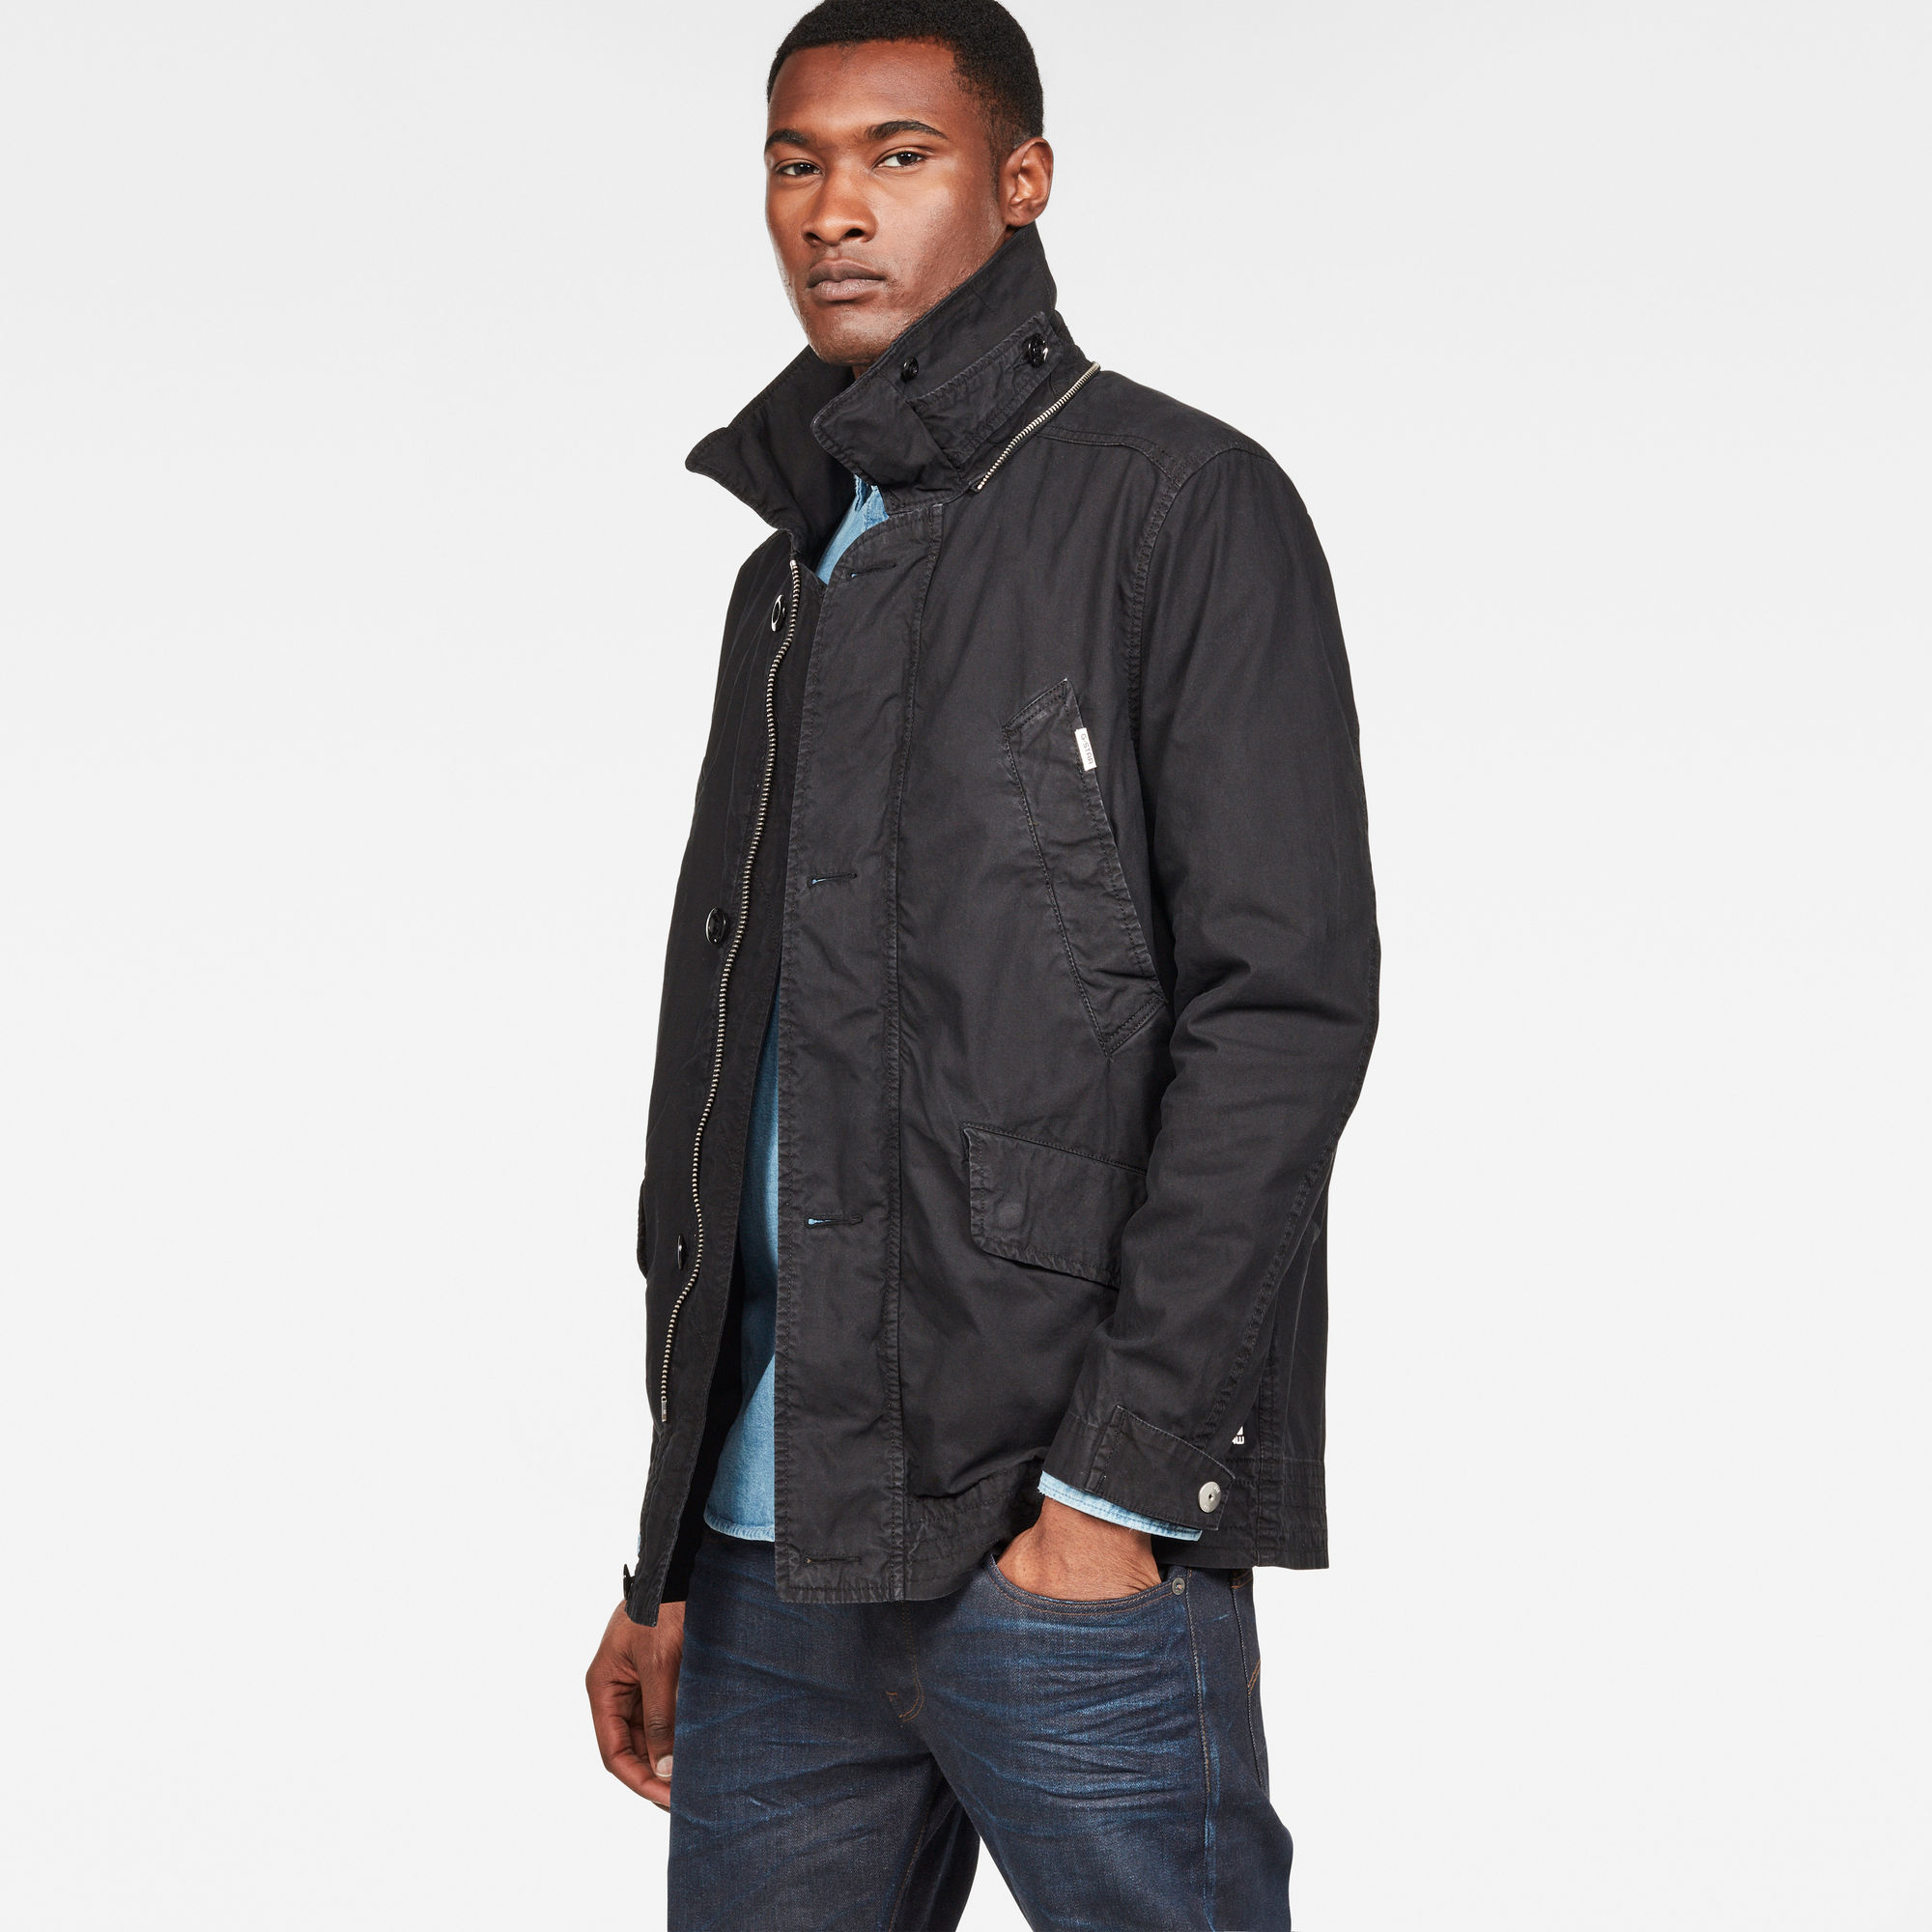 Vodan Caban Hooded Jacket